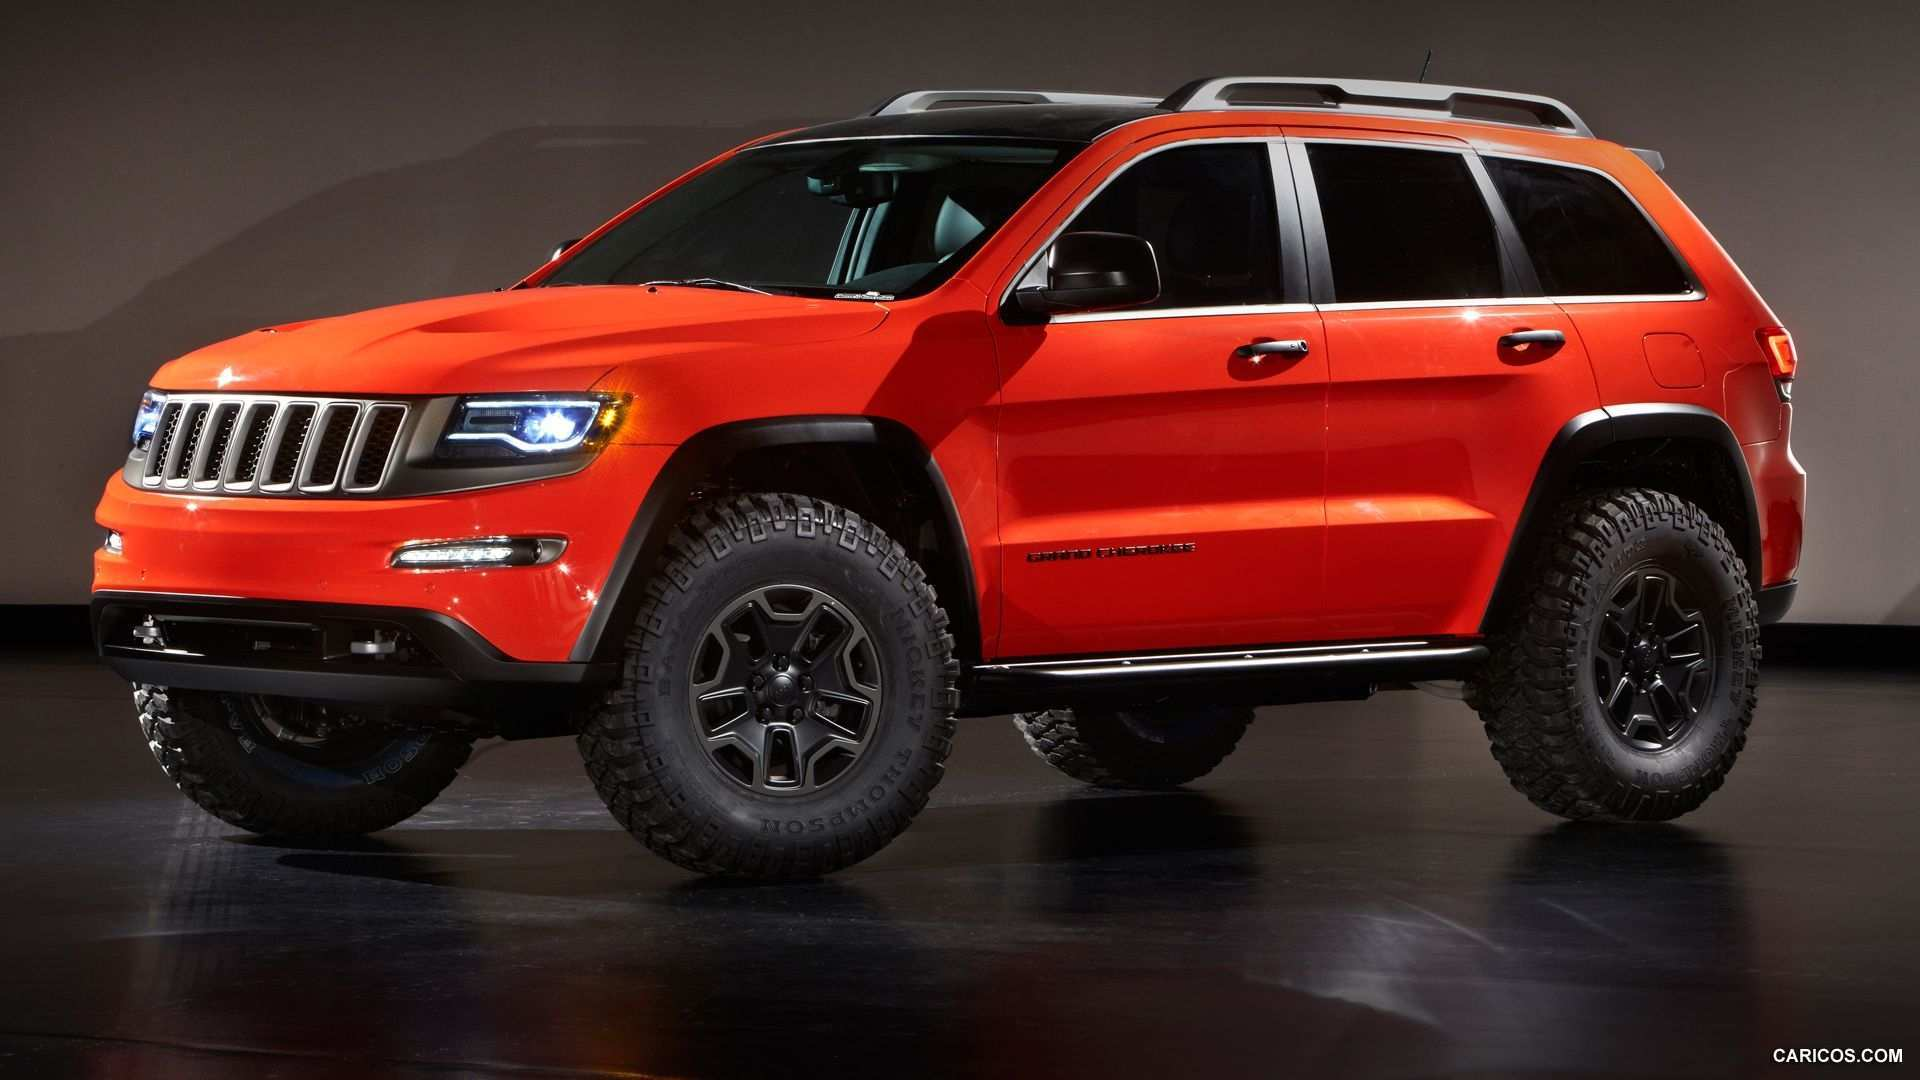 36 All New 2020 Jeep Trail Hawk Wallpaper by 2020 Jeep Trail Hawk